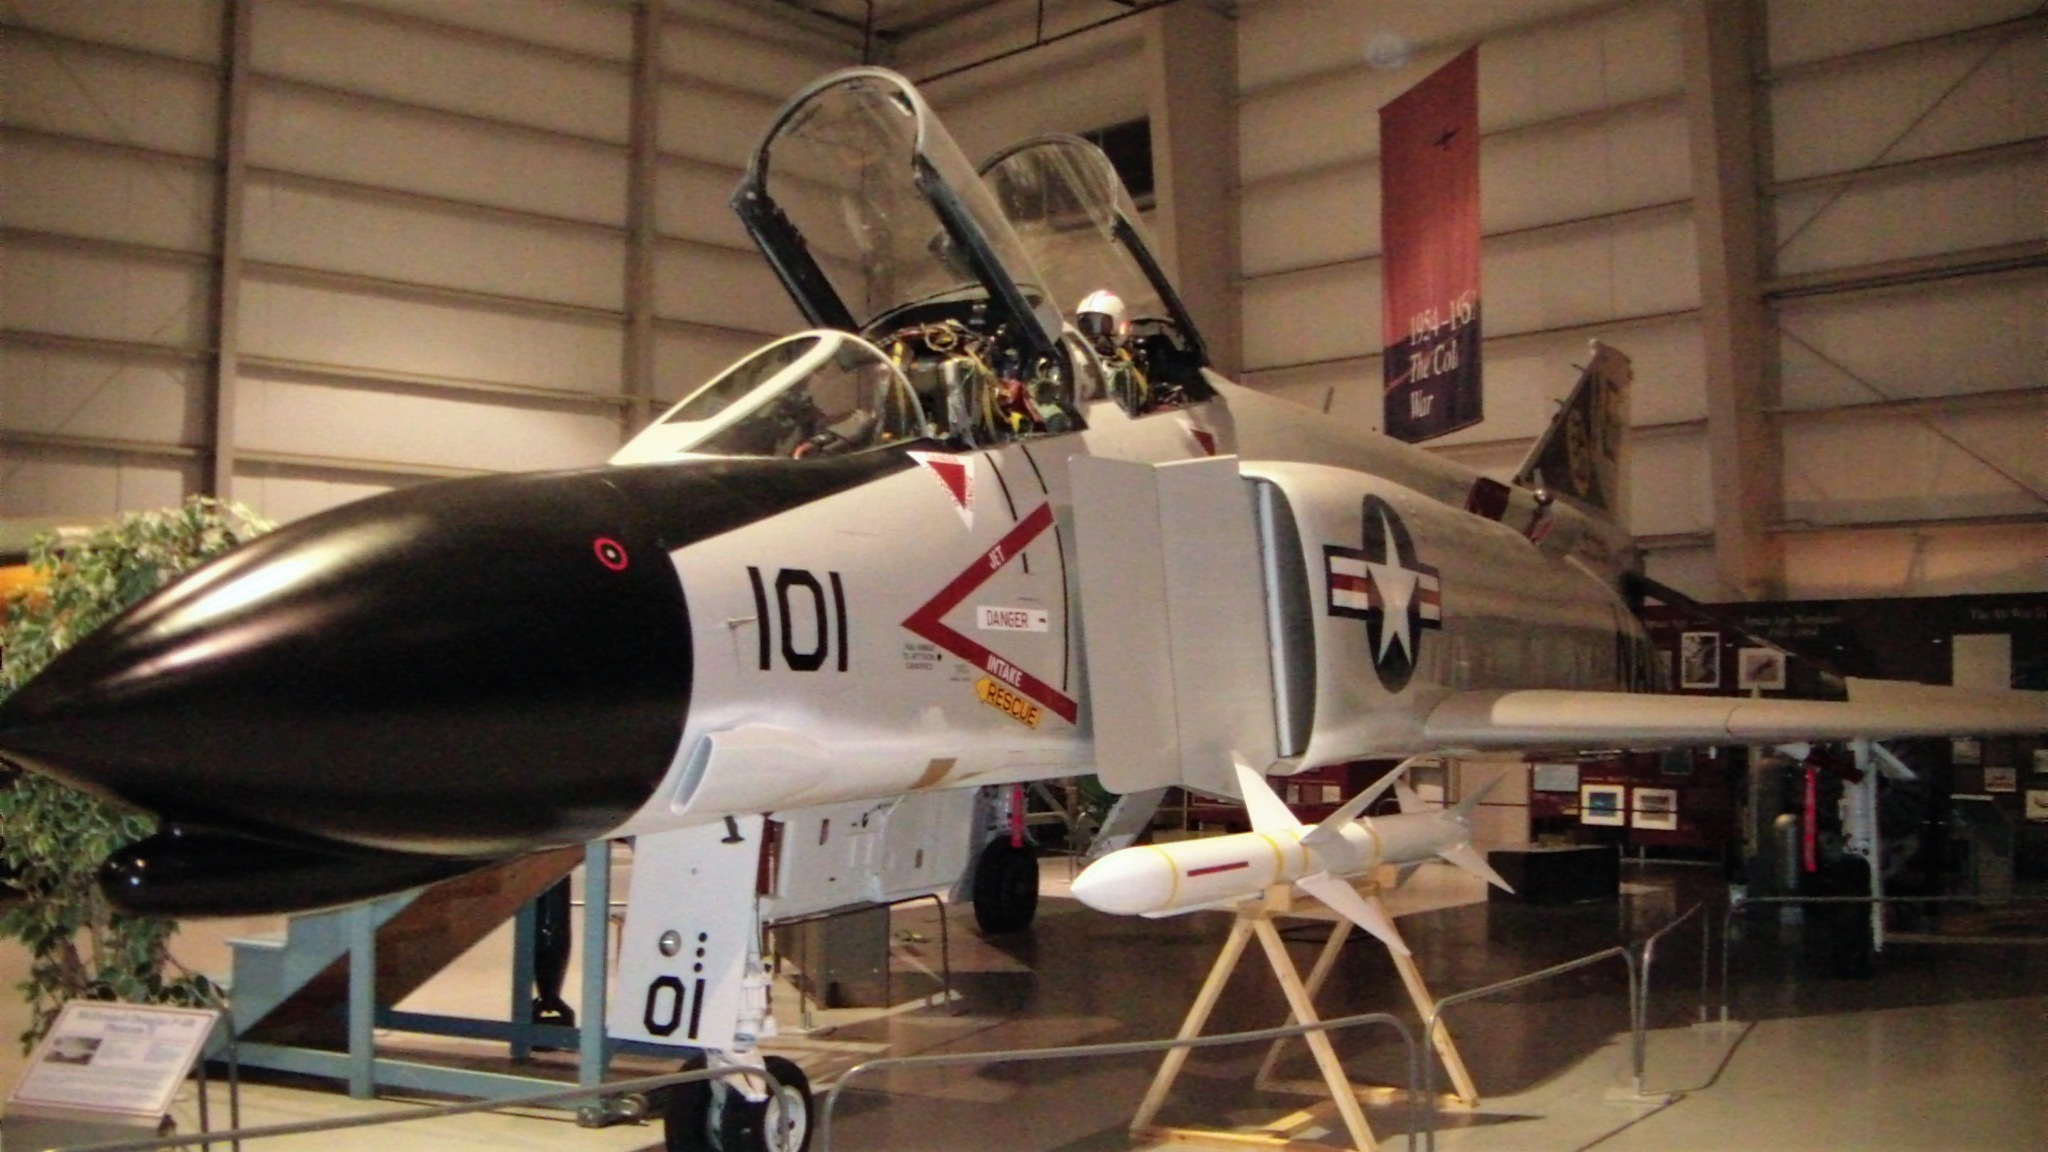 Old Air Museum New York State F-4 Phantom II, Now moved to The USS Midway Museum by Miguelvillega